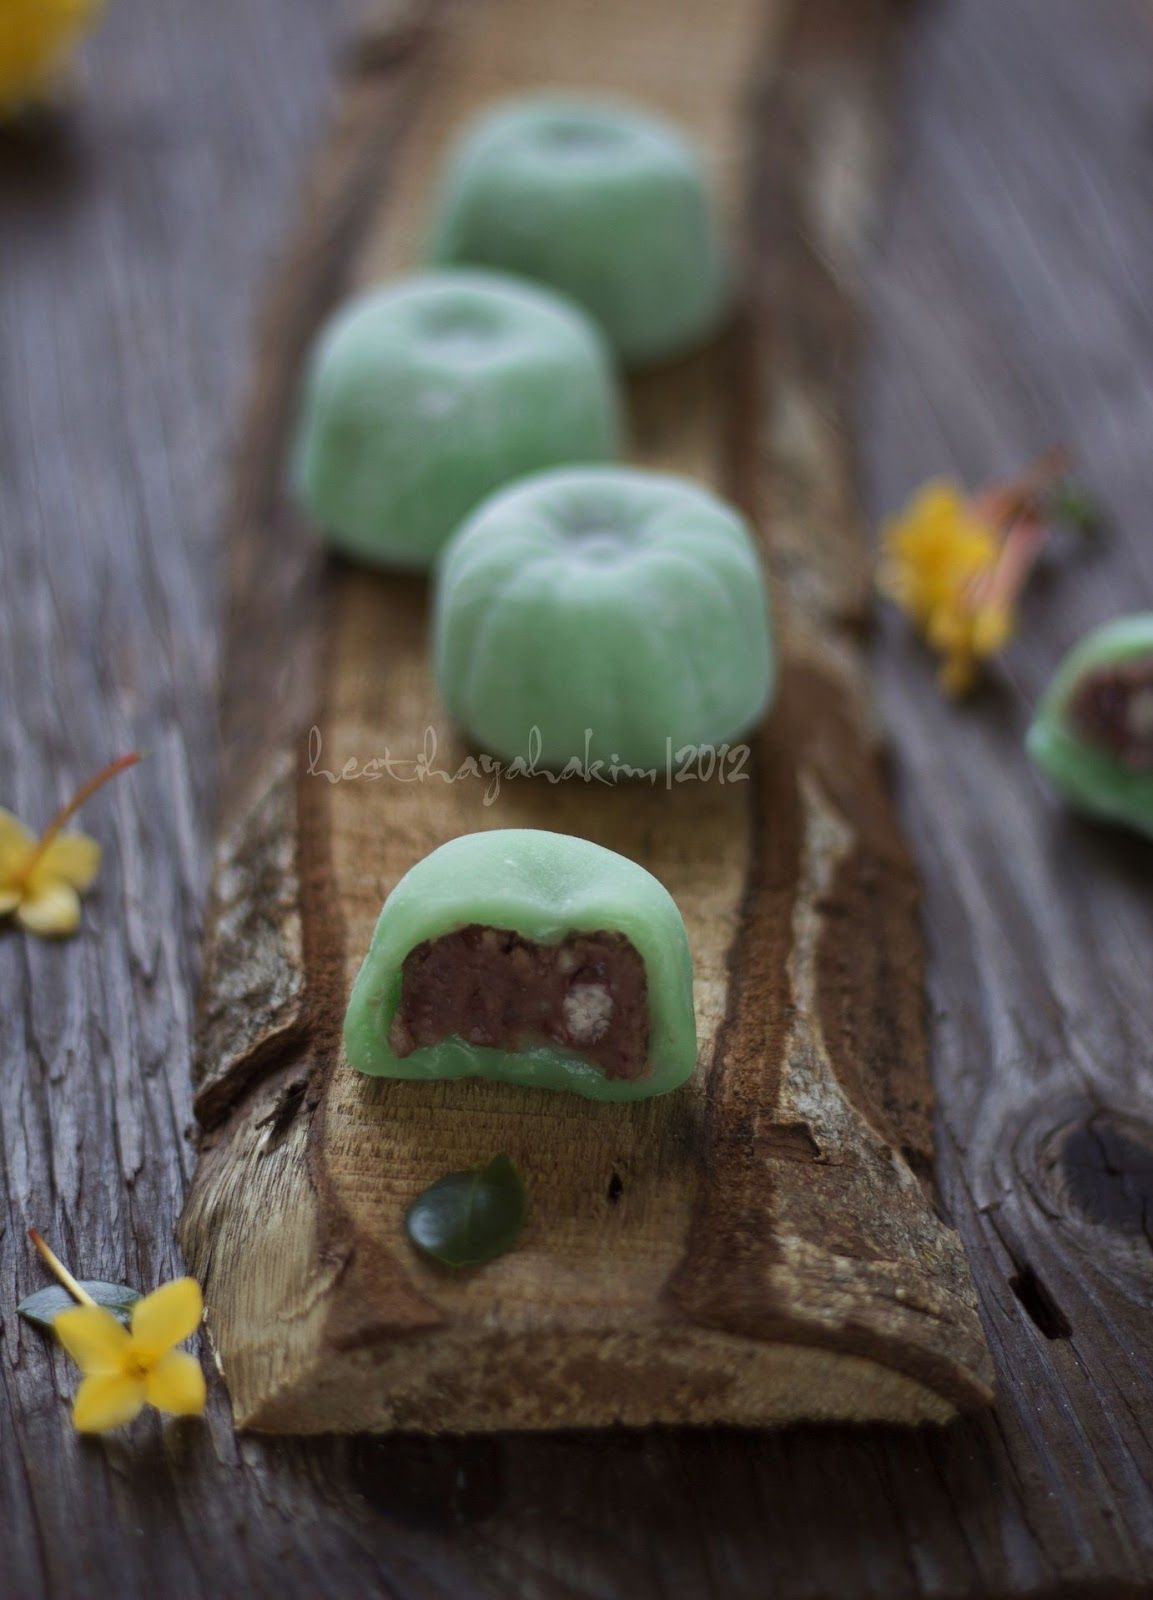 HESTI'S KITCHEN : yummy for your tummy: Mochi with Red Bean Filling